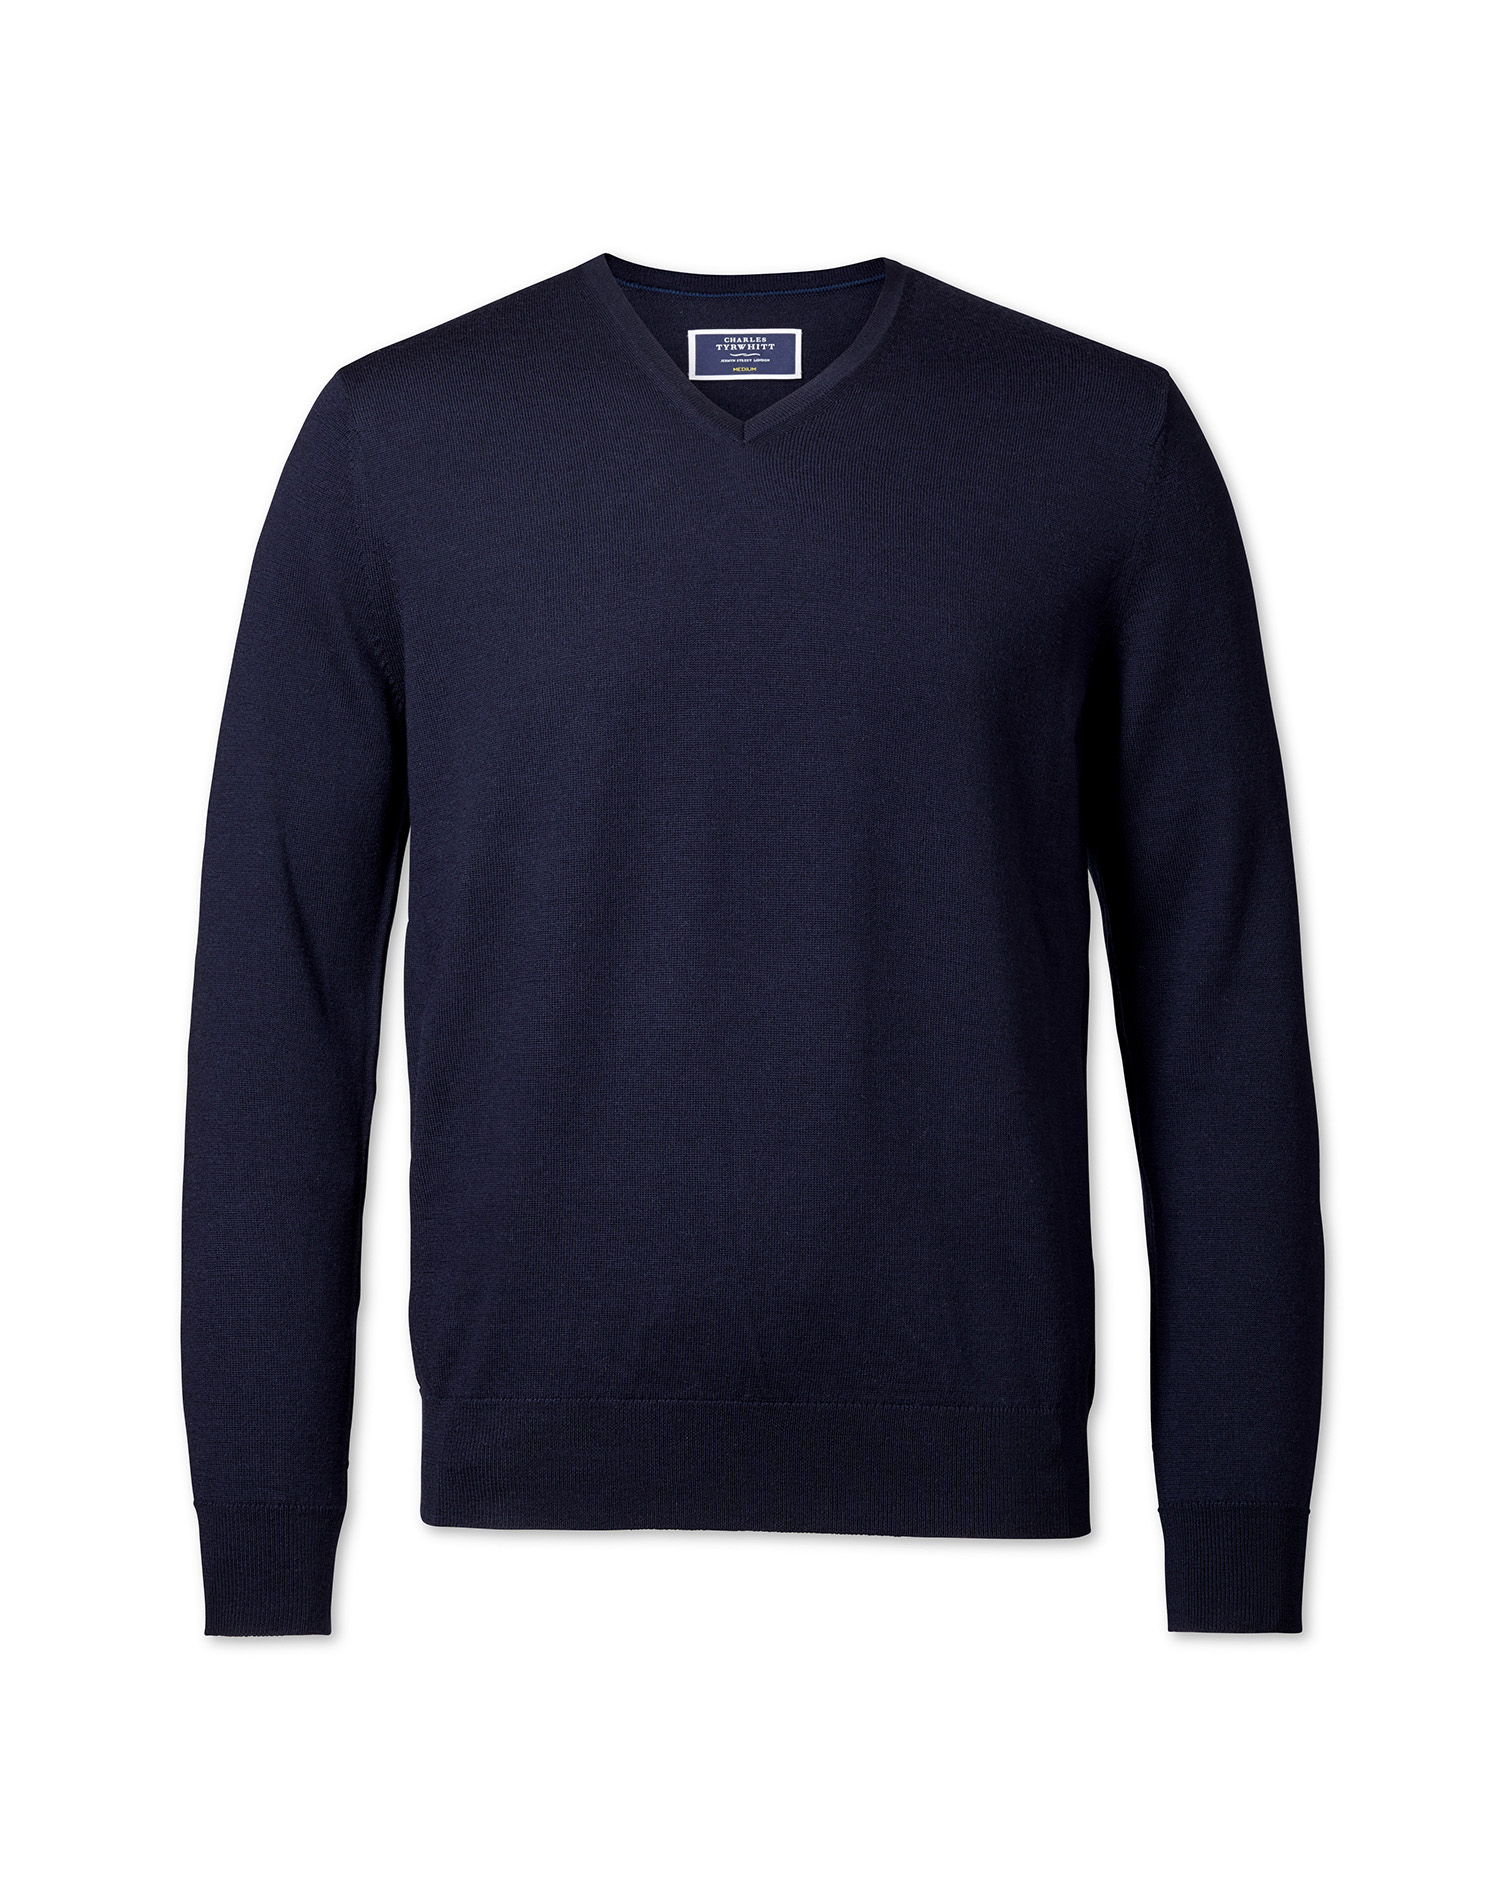 Shop merino wool pullover sweater at Neiman Marcus, where you will find free shipping on the latest in fashion from top designers.